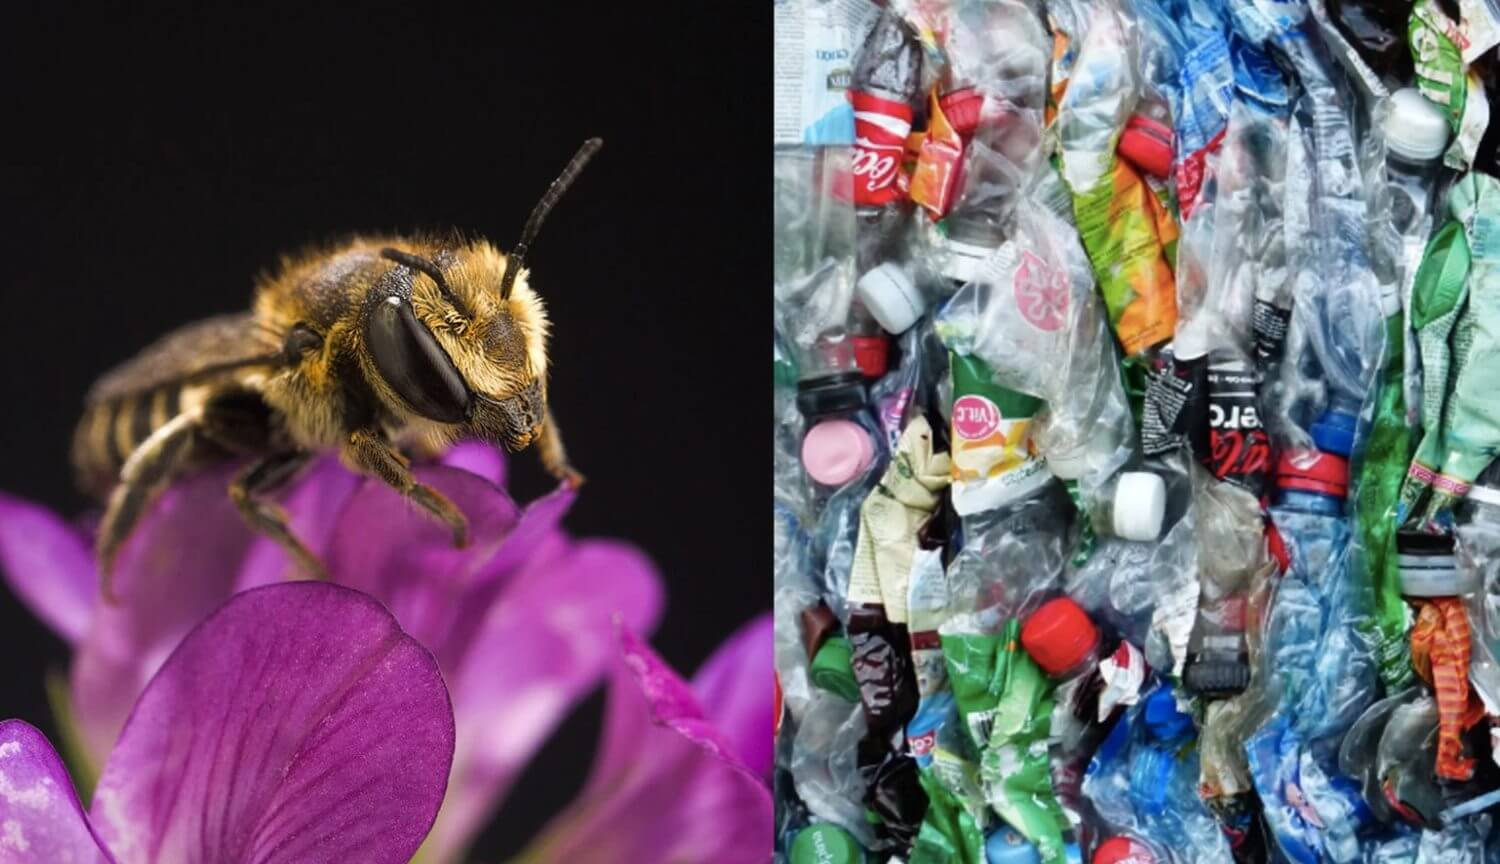 The bees have started to build nests entirely from plastic waste